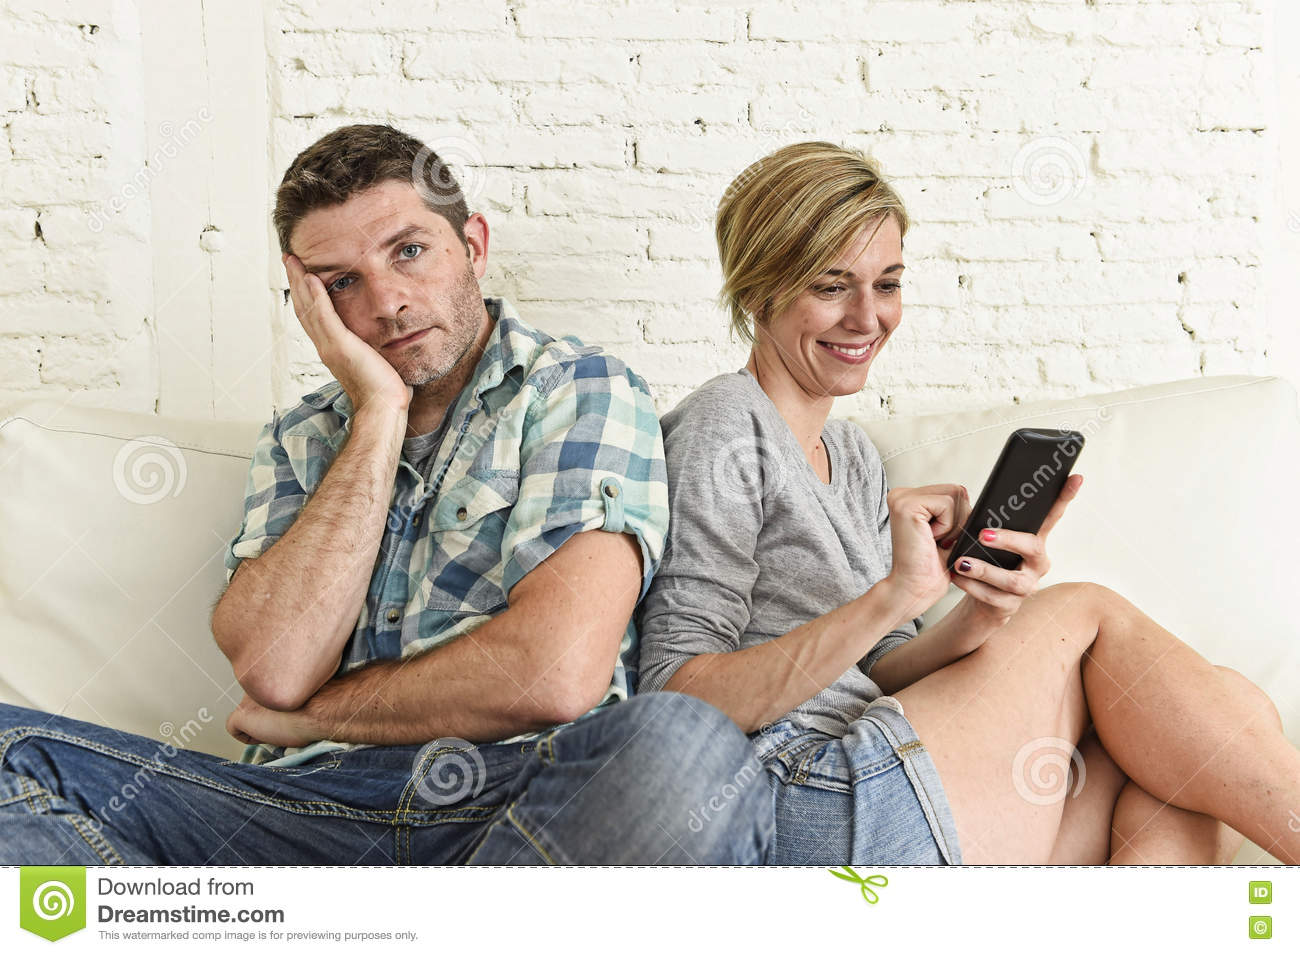 Woman addicted to online dating